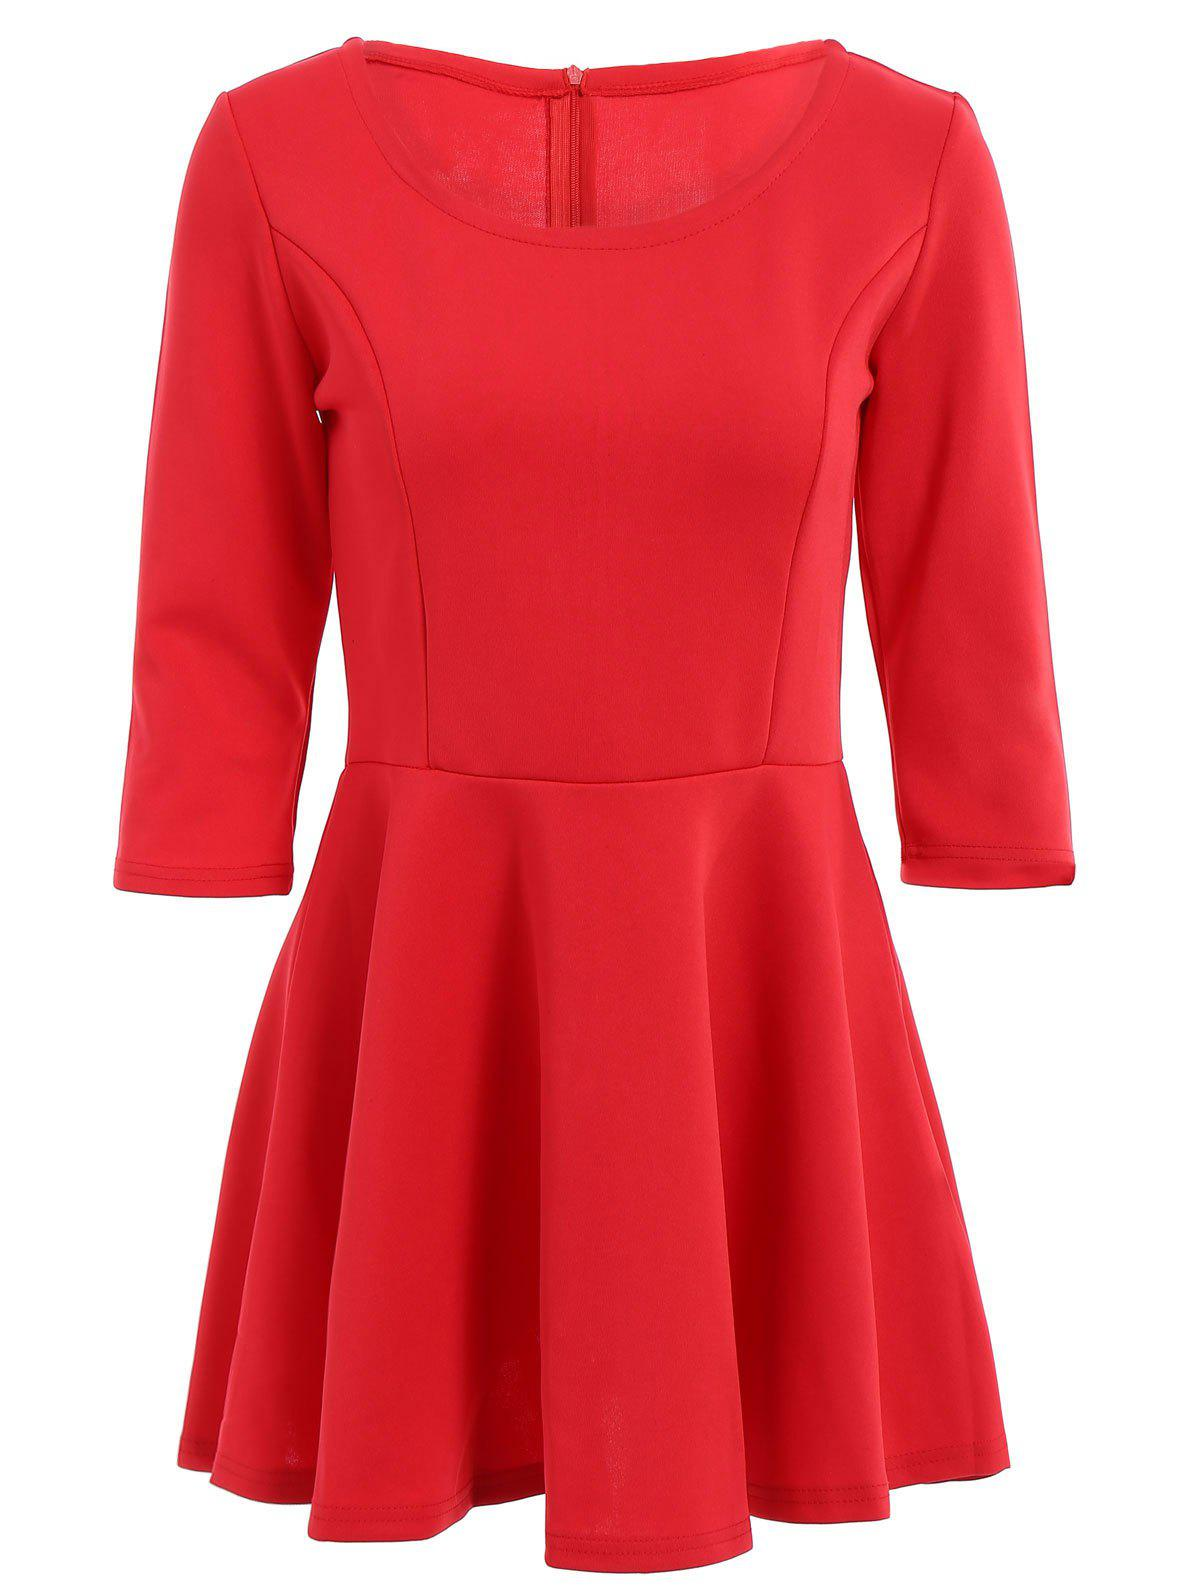 Stylish Scoop Neck 3/4 Sleeve Solid Color A Line Women's Dress - RED L